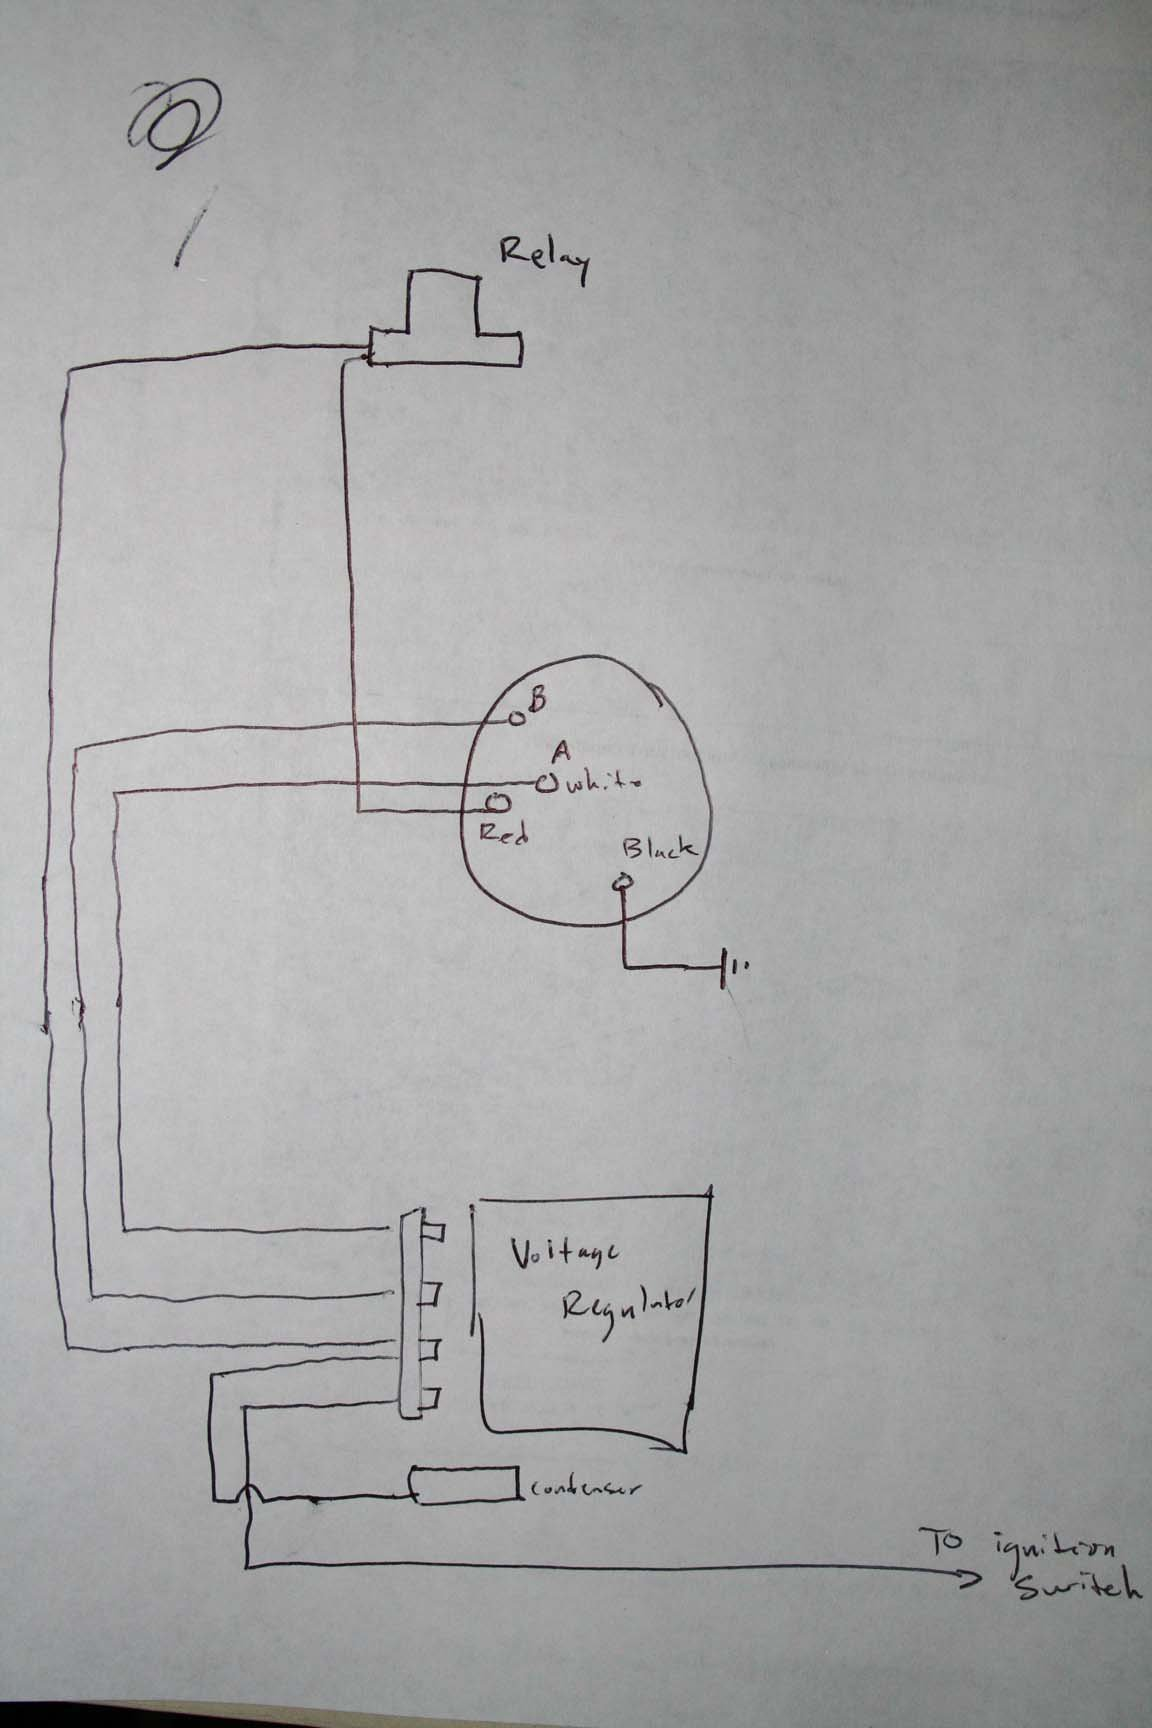 Wiring Diagram: 31 Voltage Regulator Wire Diagram